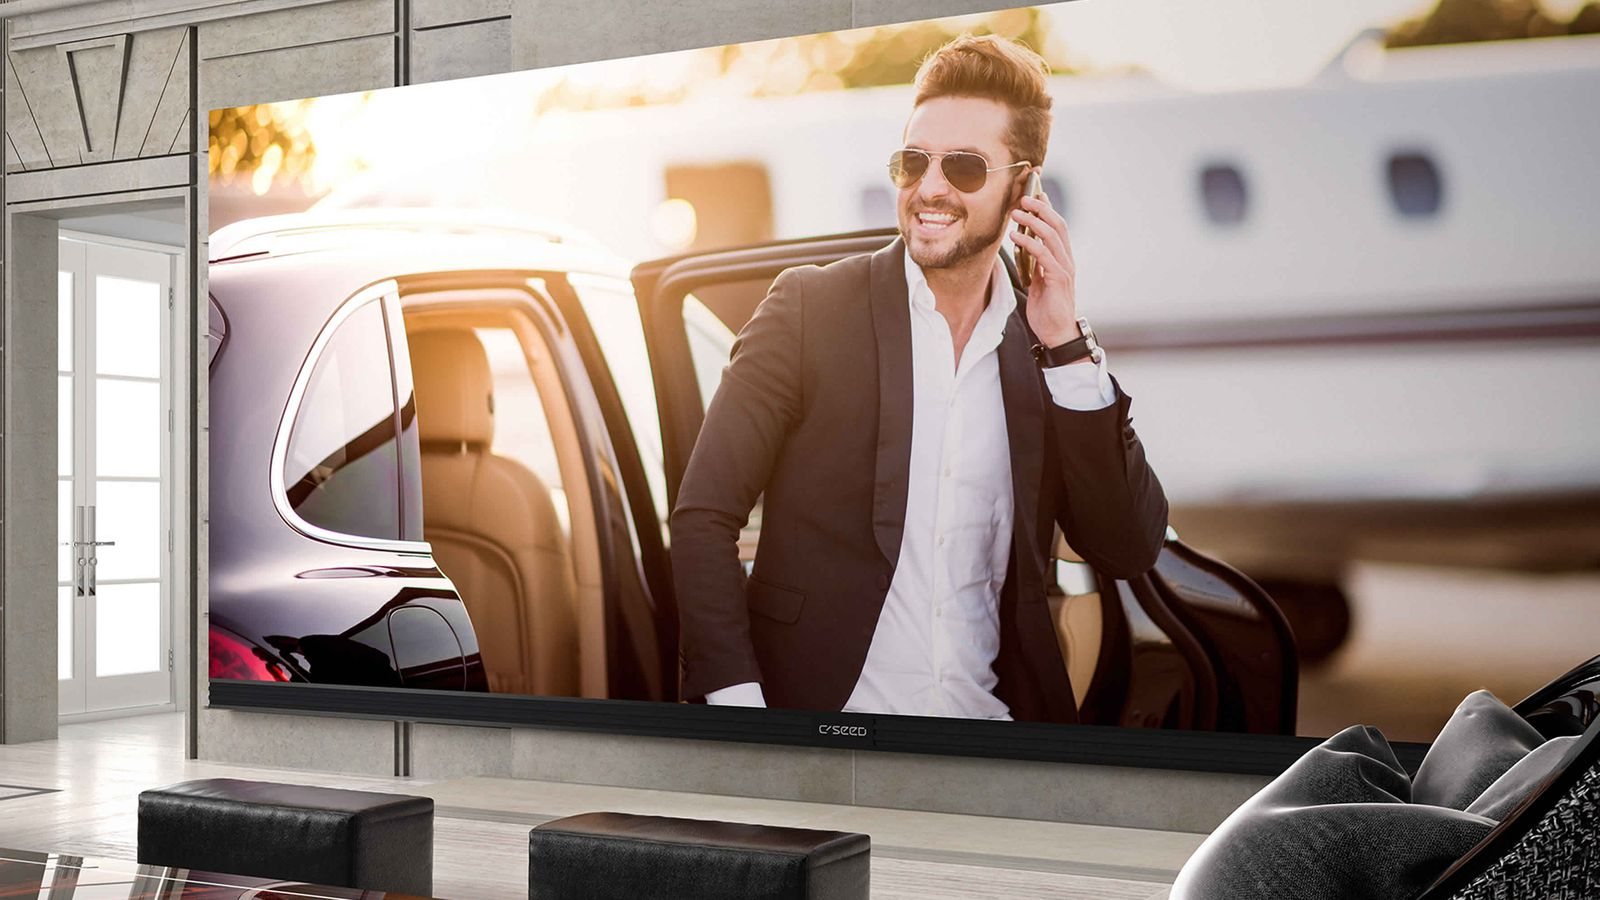 The Biggest 4k Tv You Can Buy Makes Your 100 Inch Tv Look